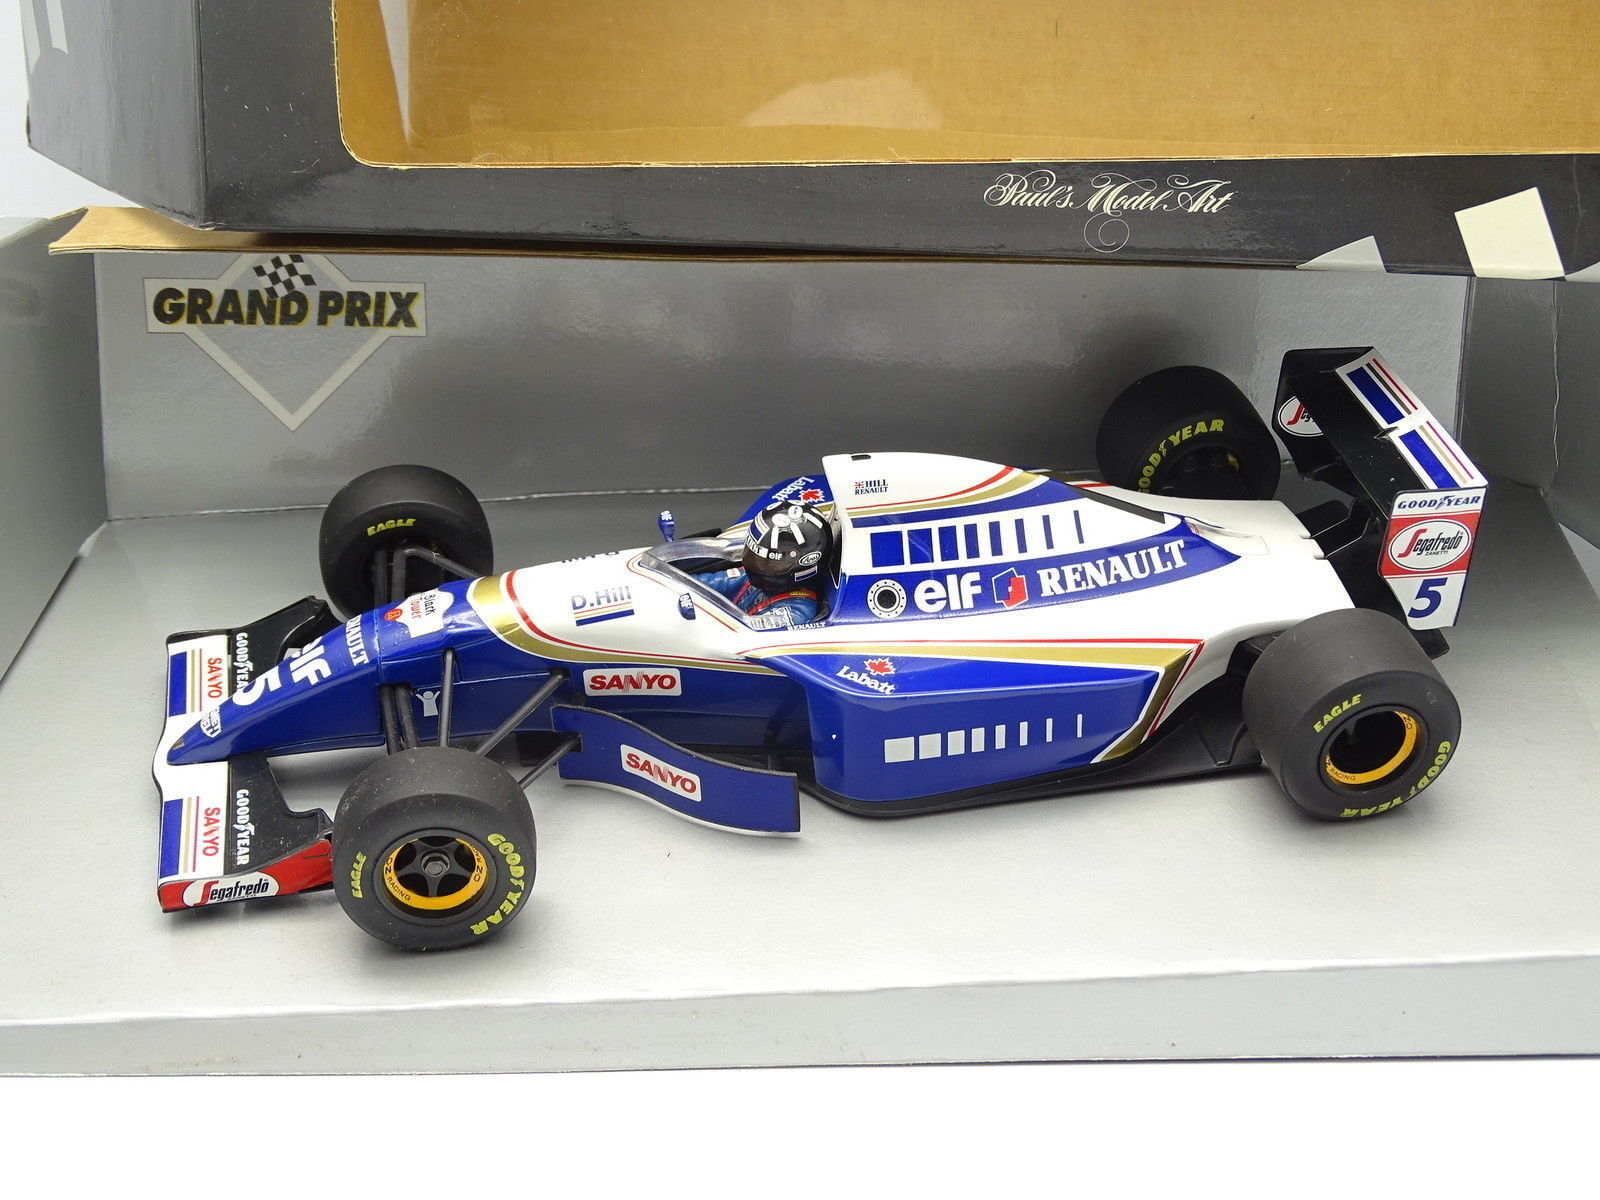 Minichamps 1 18 - F1 WILLIAMS renault FW16 FW16 FW16 hill 4a39c1